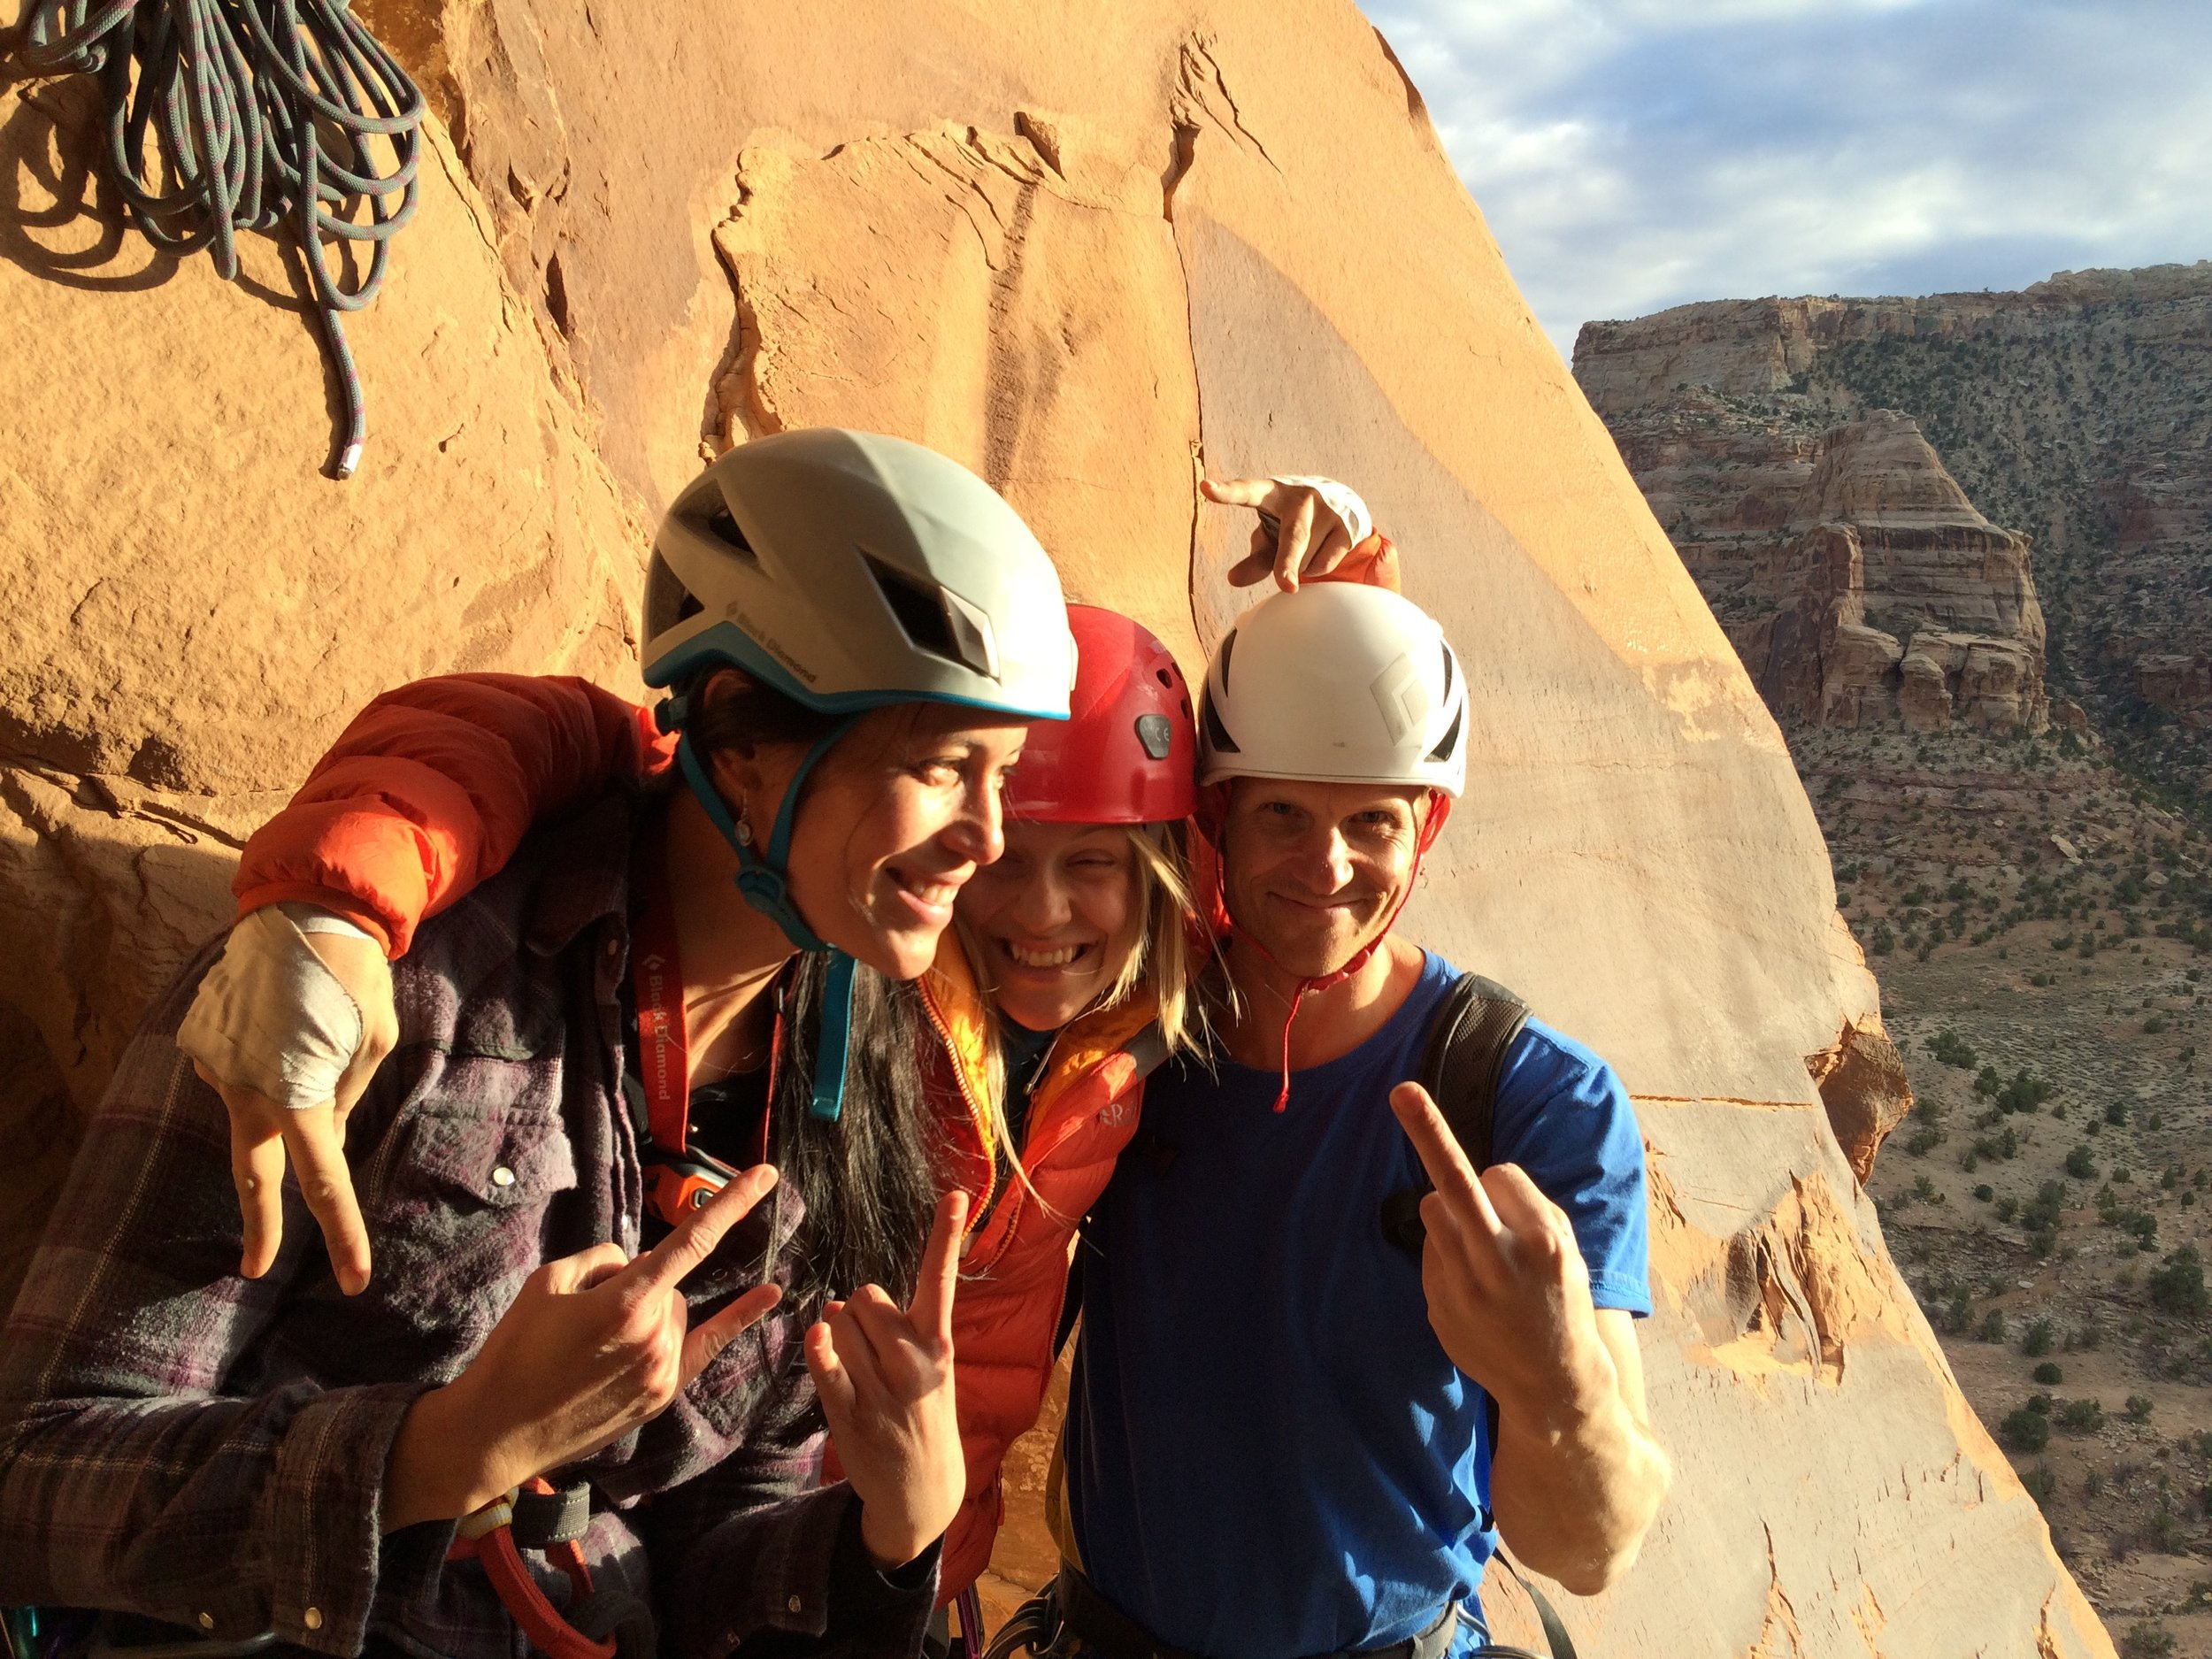 Juanita and Josh throwing gang  signs on haagenshlong tower, San Rafel Swell, Utah, USA